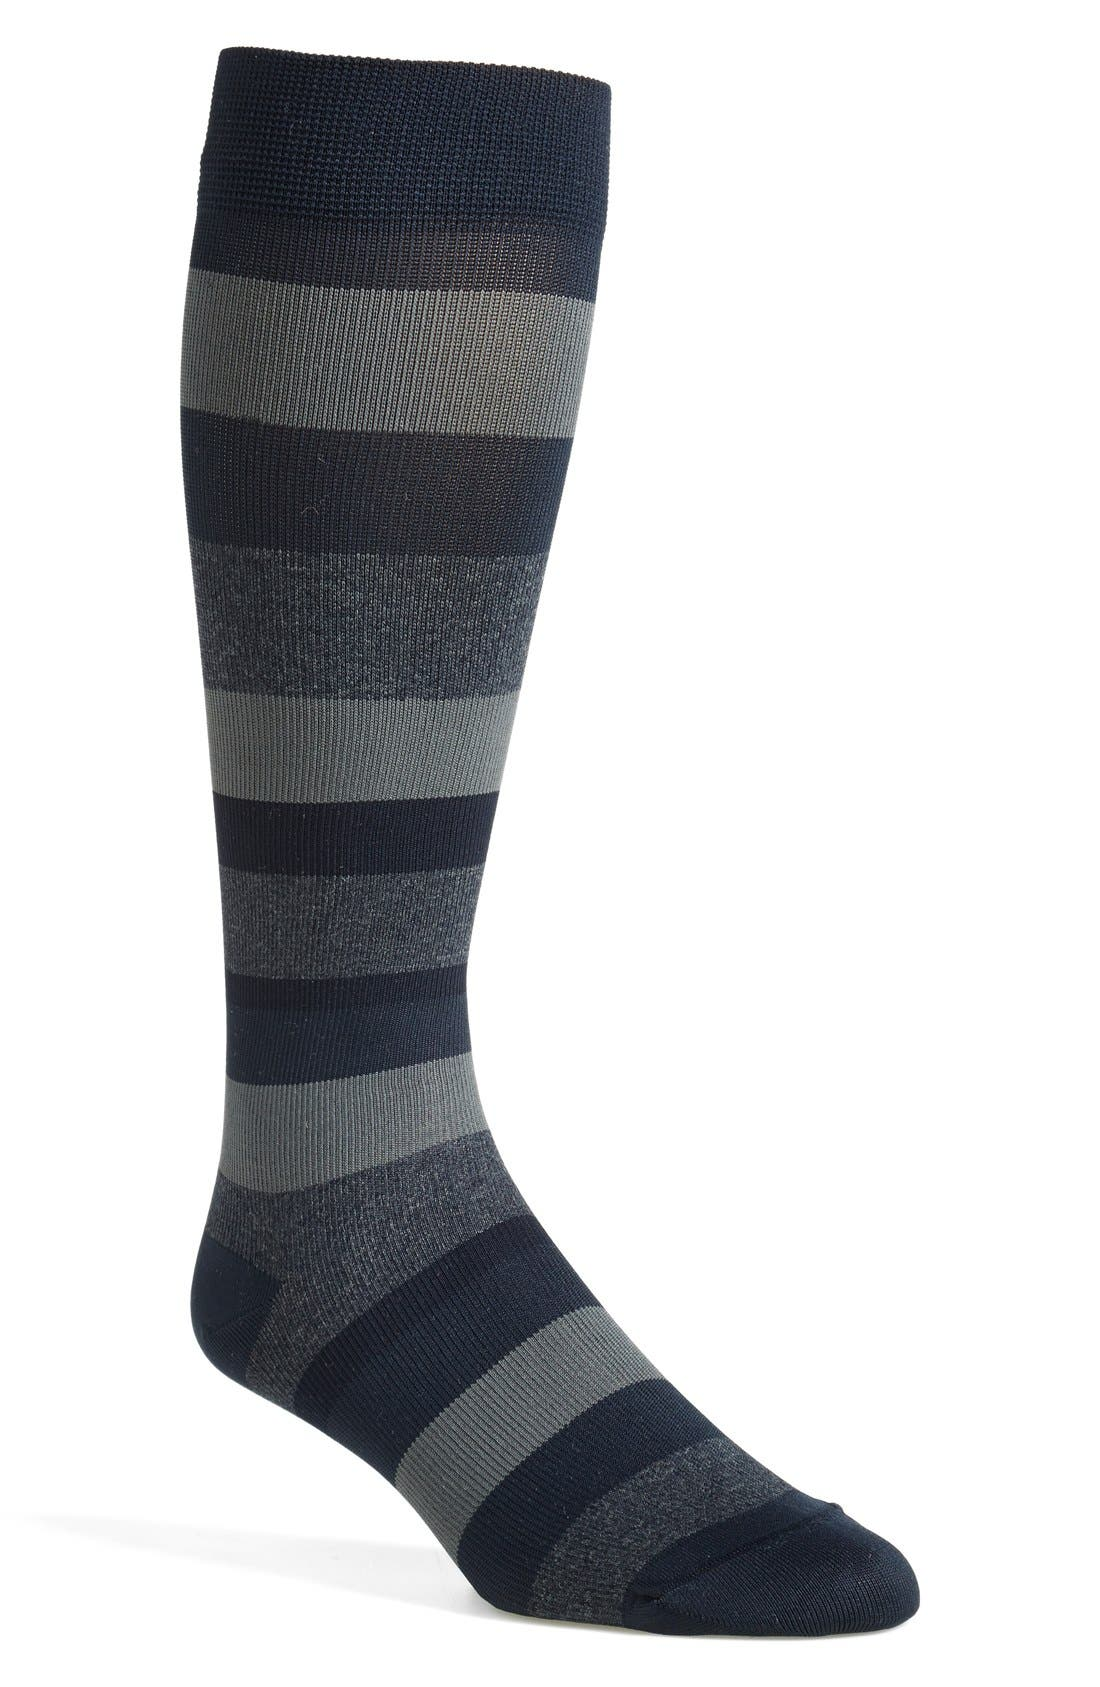 INSIGNIA by SIGVARIS 'Keynote' Over the Calf Socks